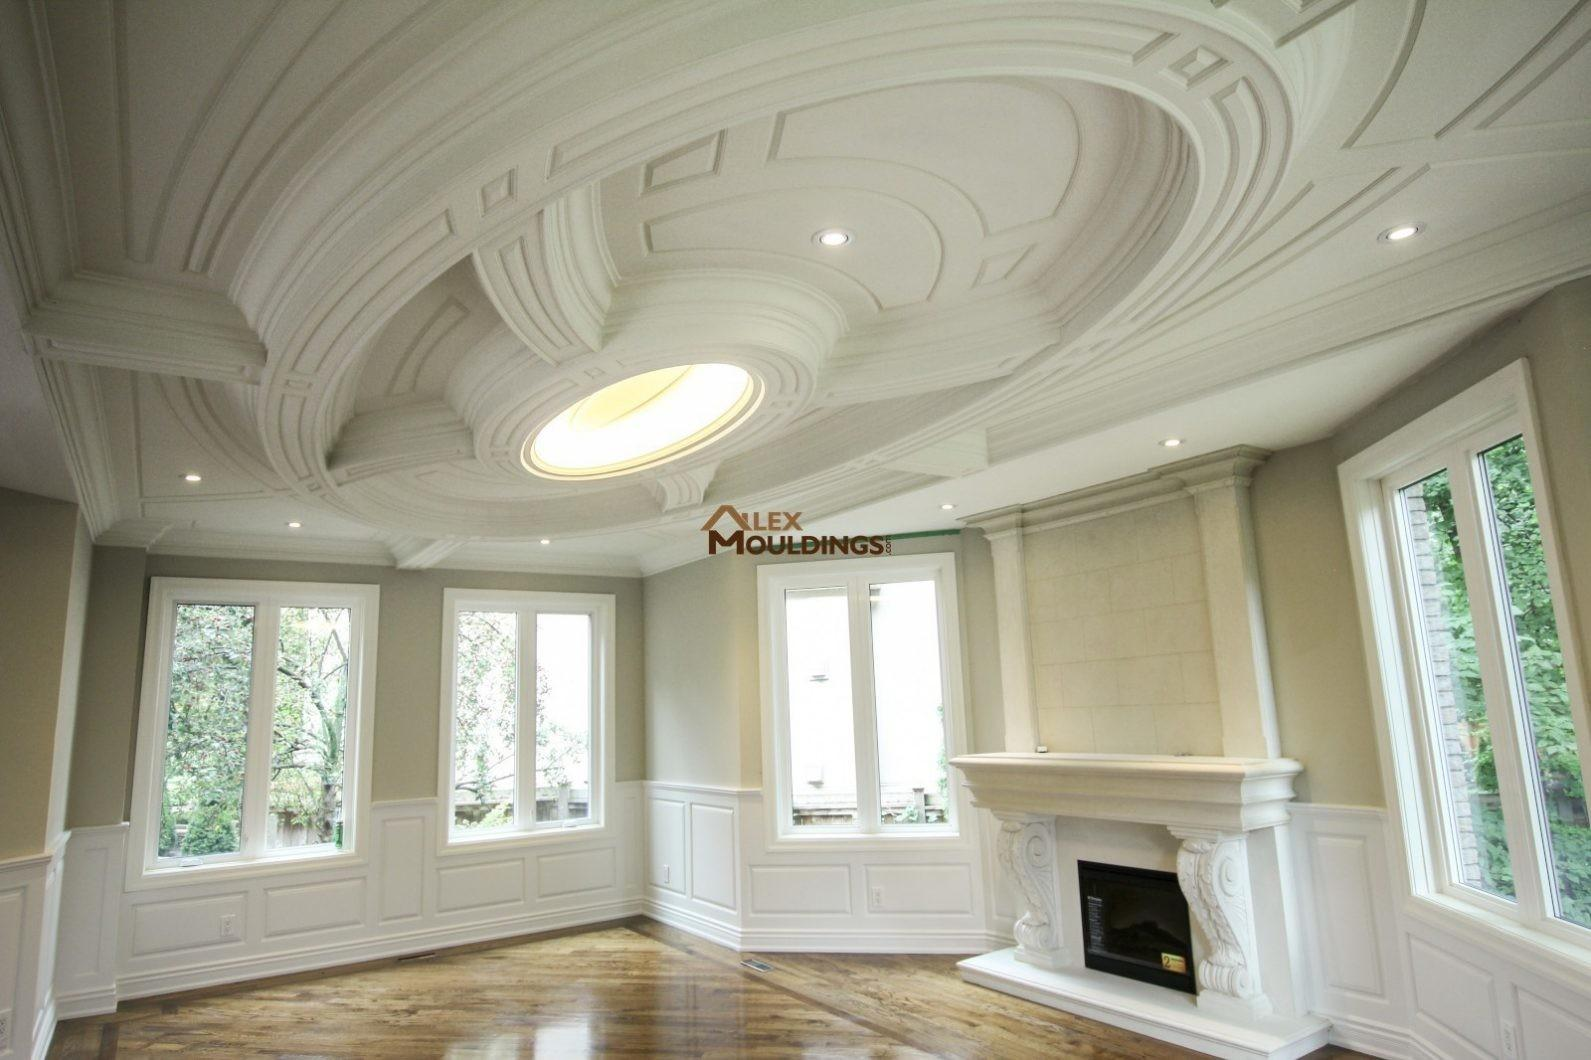 Fifth Wall Inspirational Ceilings Alex Moulding